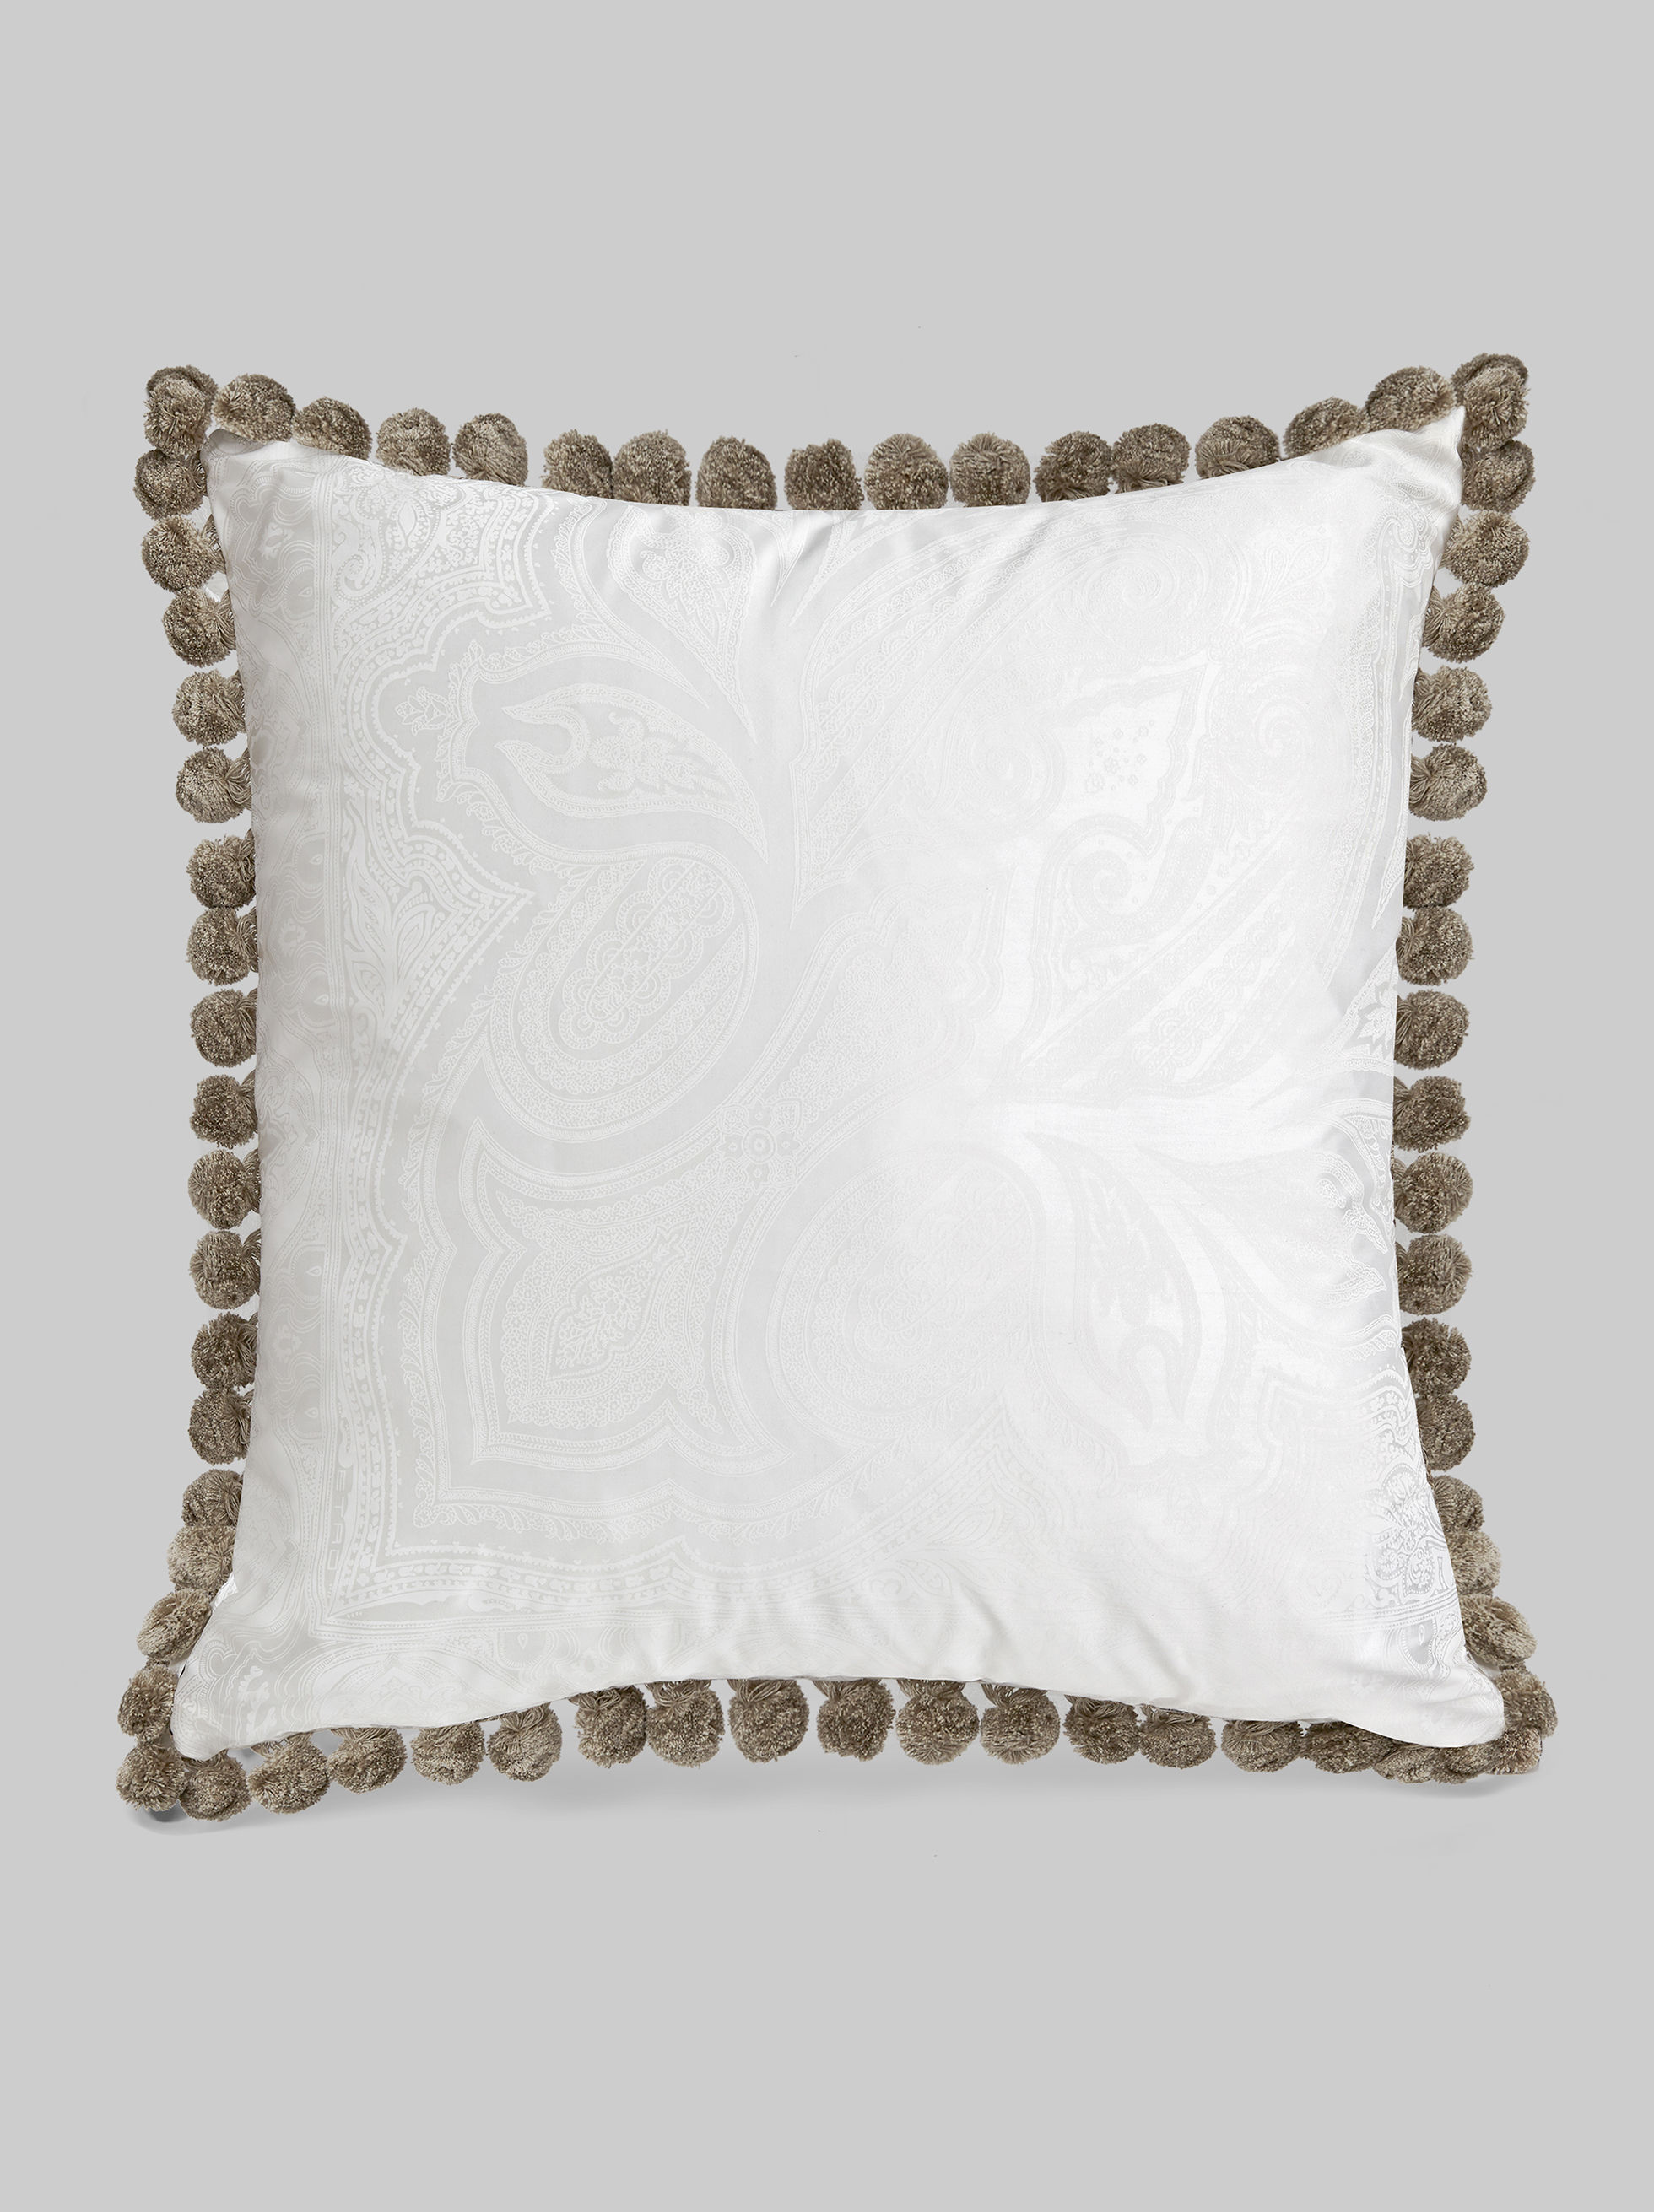 THROW PILLOW WITH TRIMMINGS